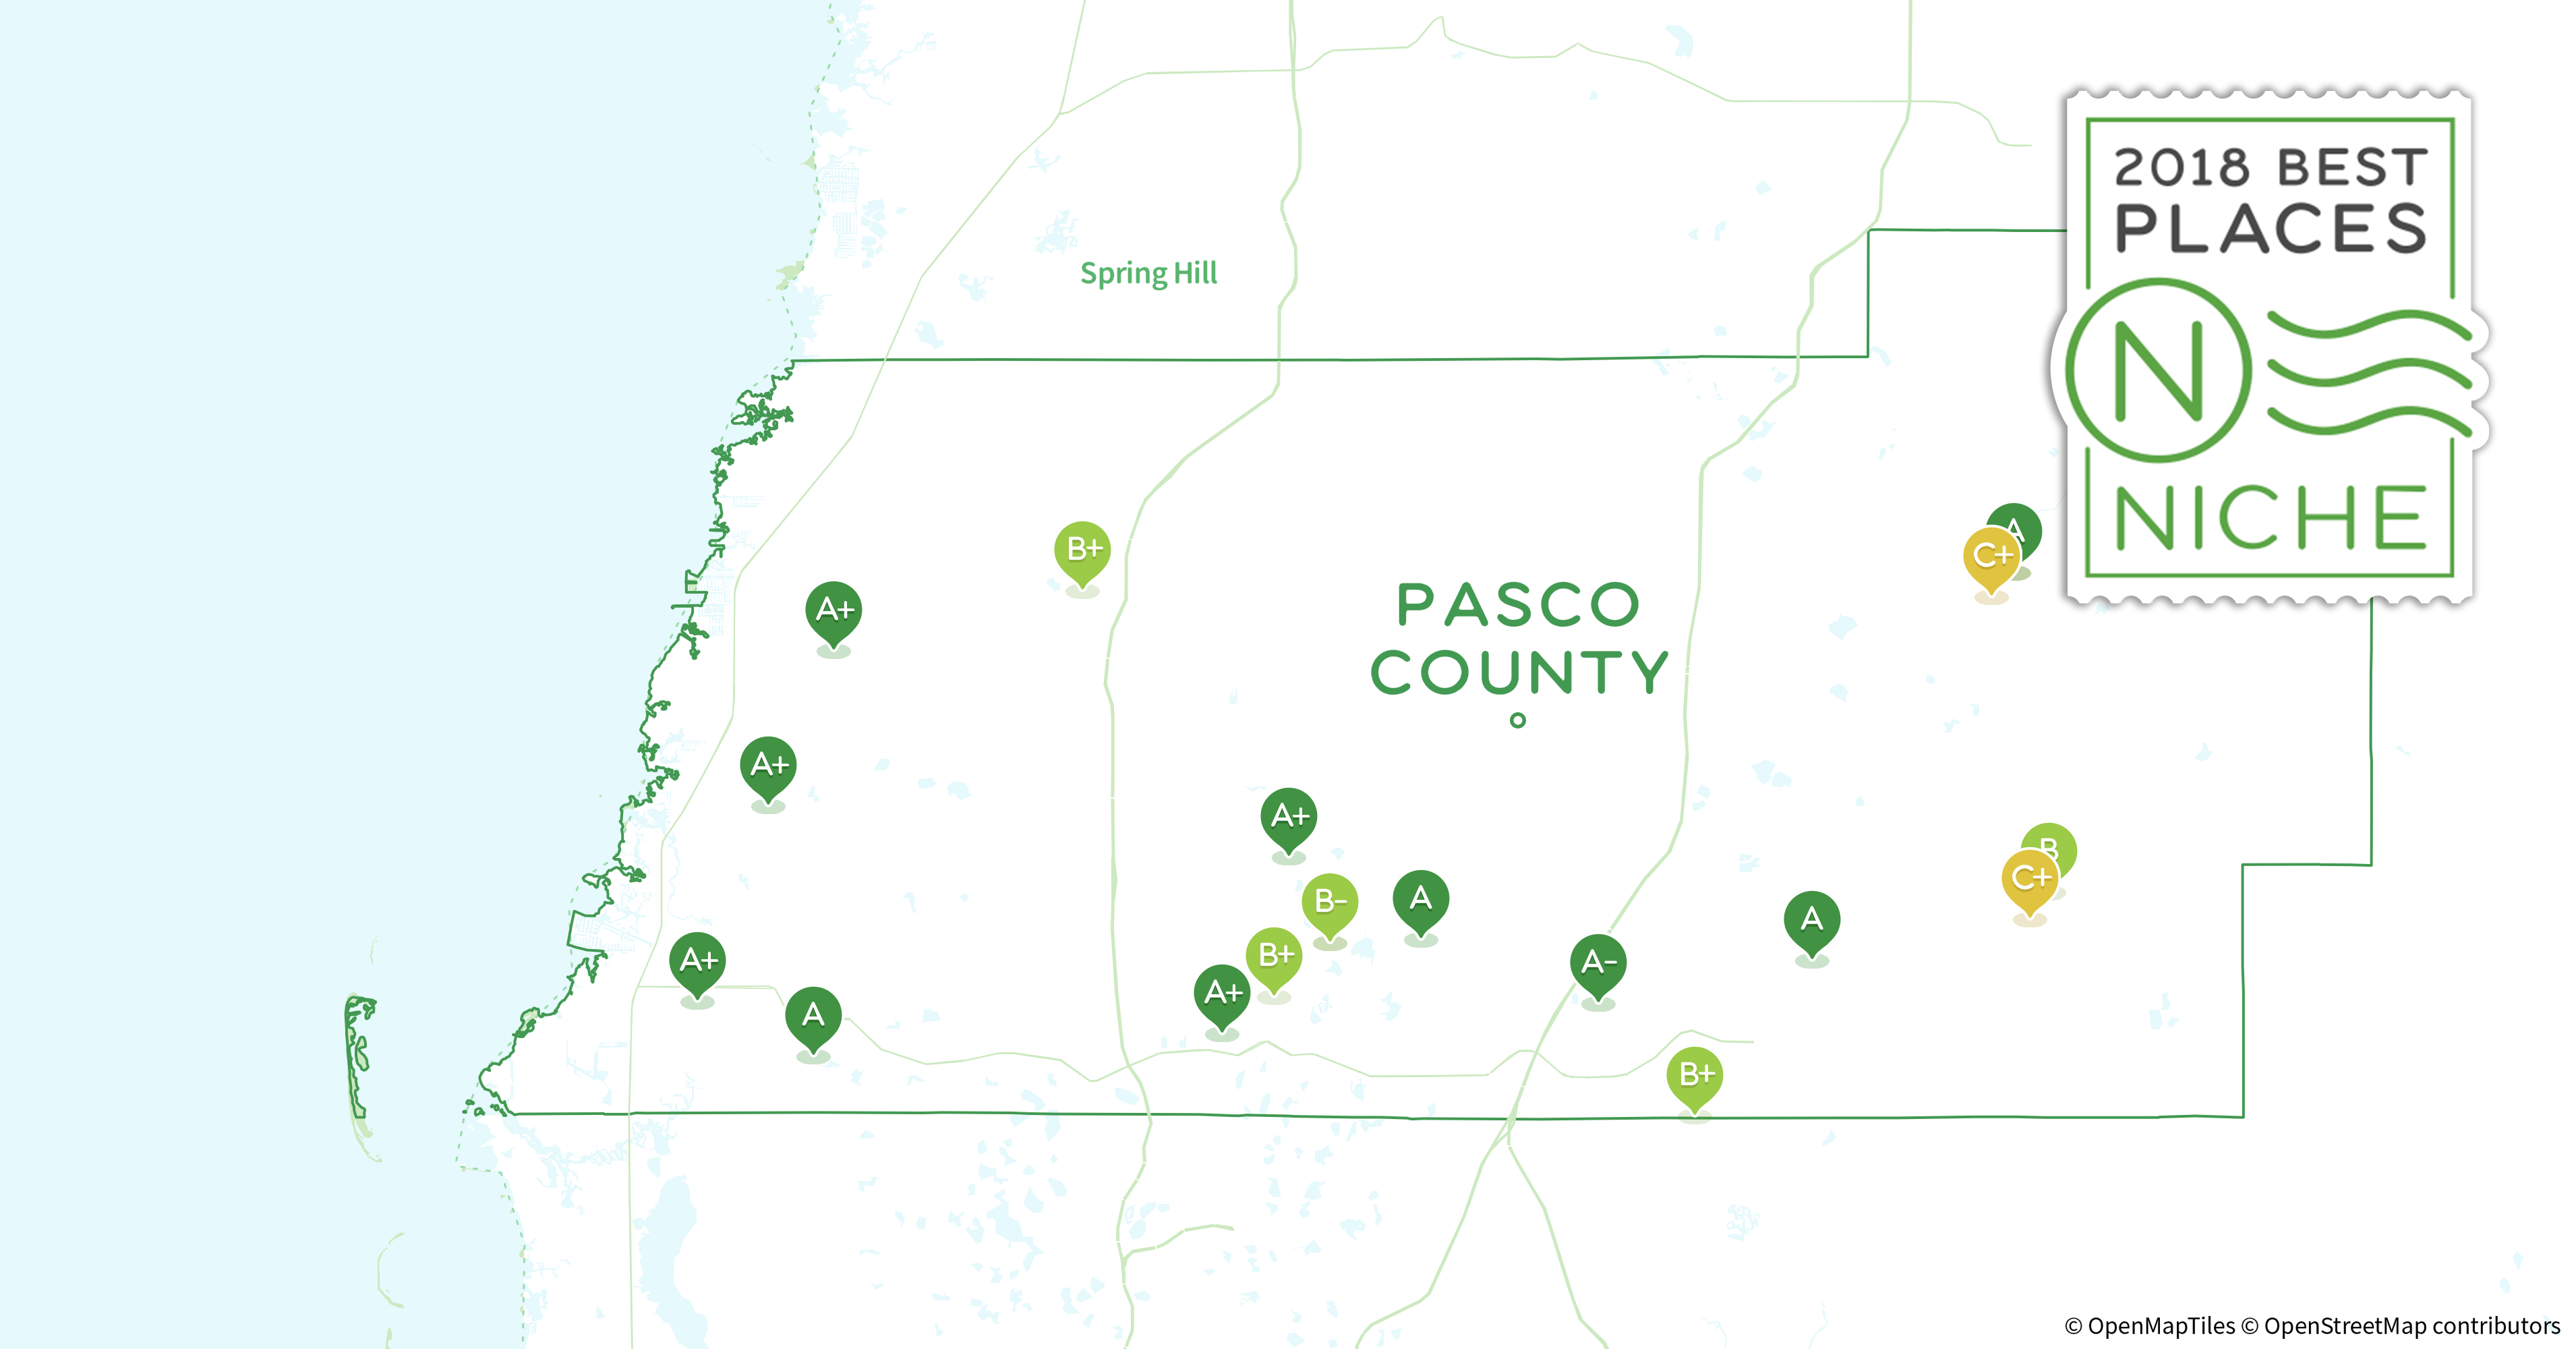 2018 Best Places to Live in Pasco County FL Niche